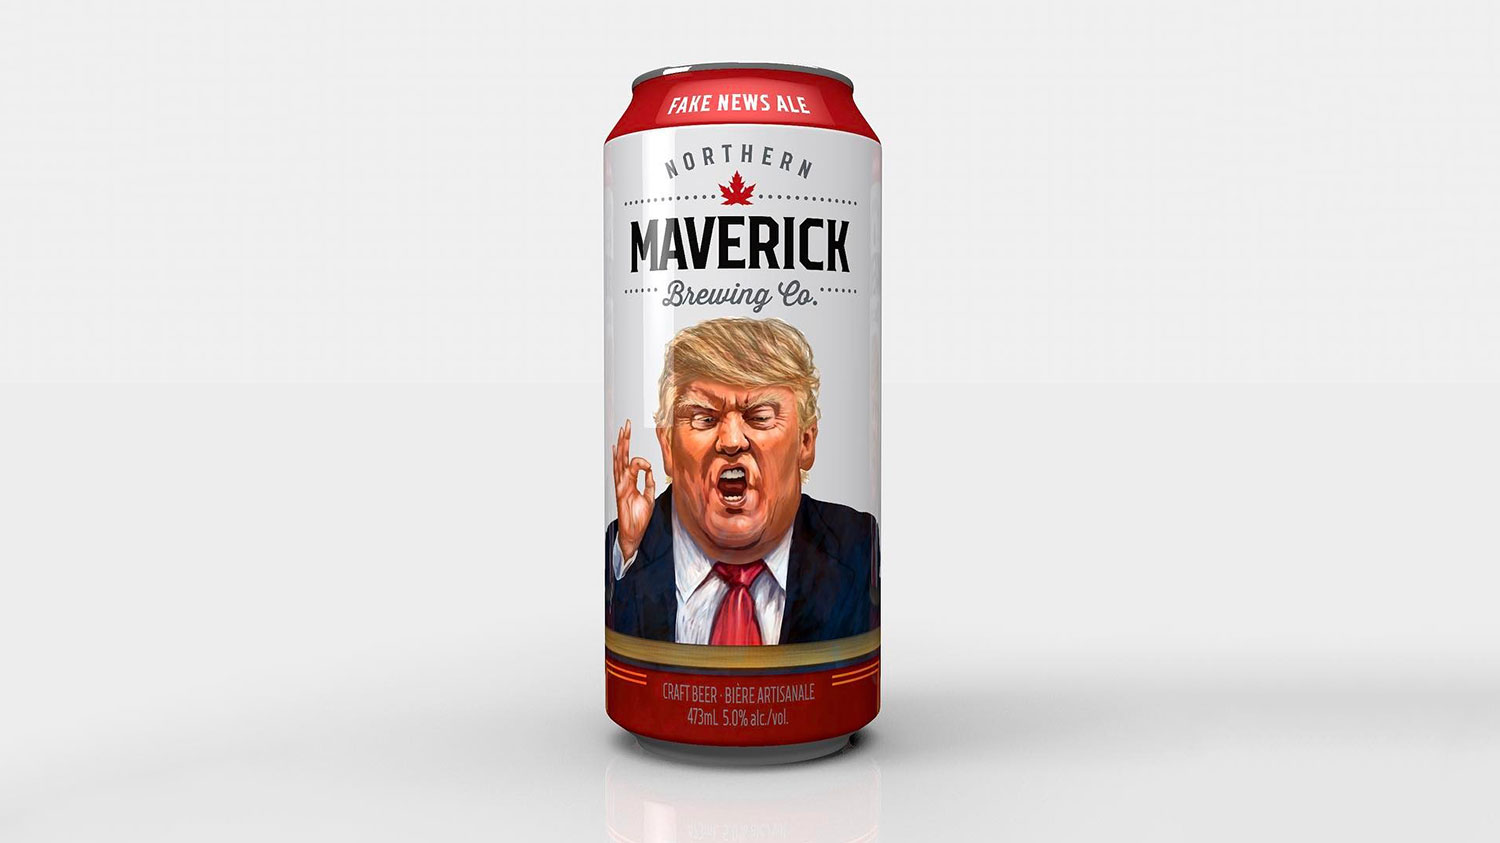 fake news ale northern maverick brewing